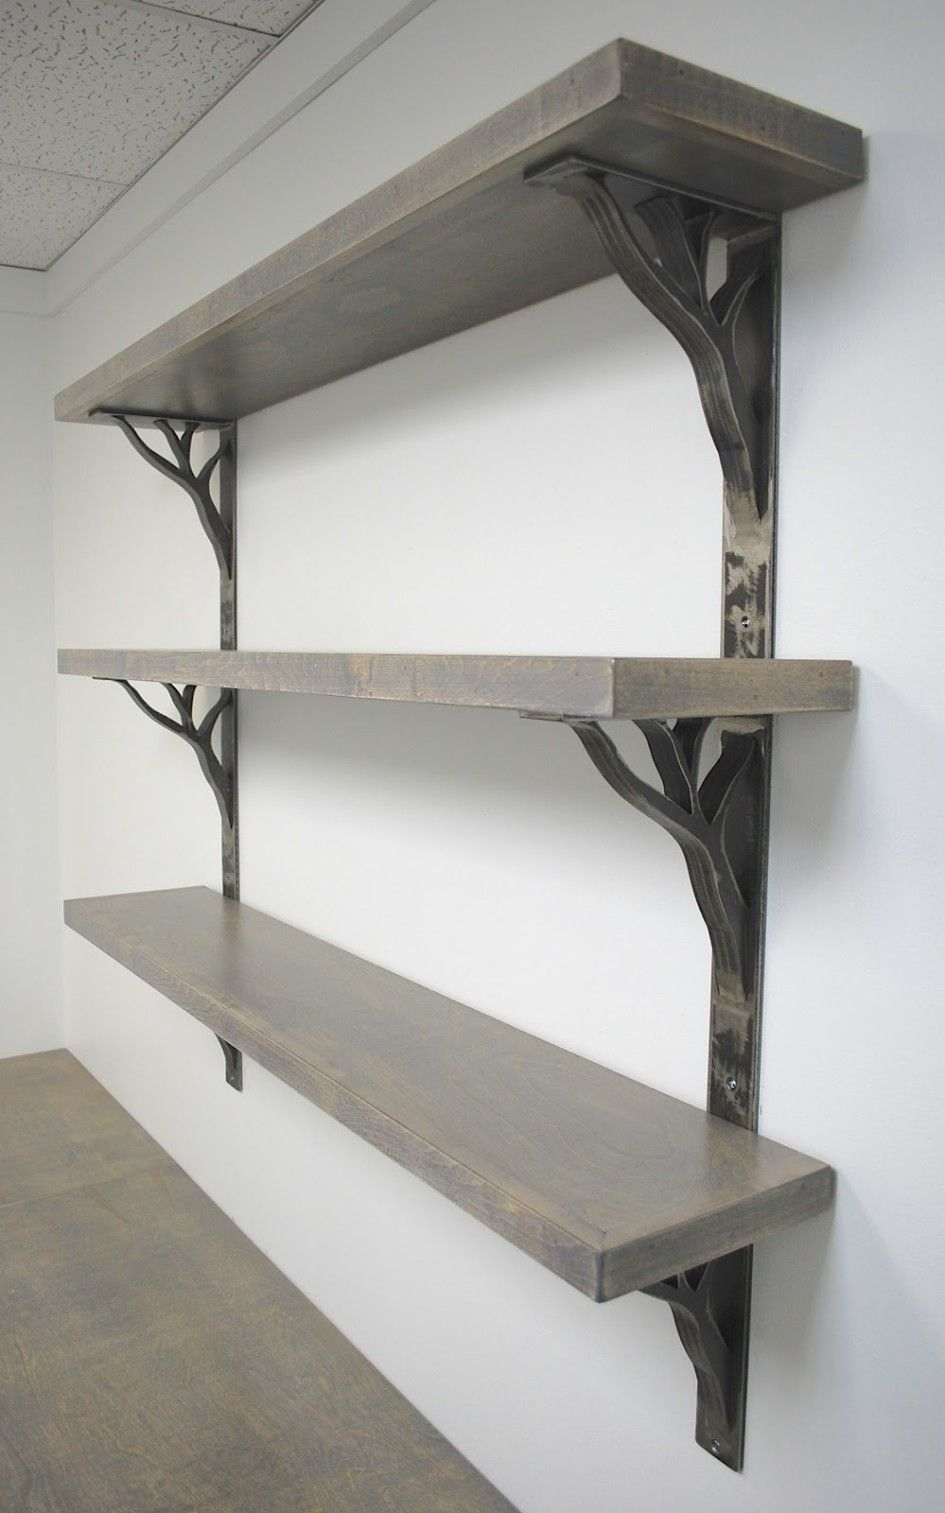 Support As A Blank Wall Shelf Brackets For Cool Metal Or A Natural